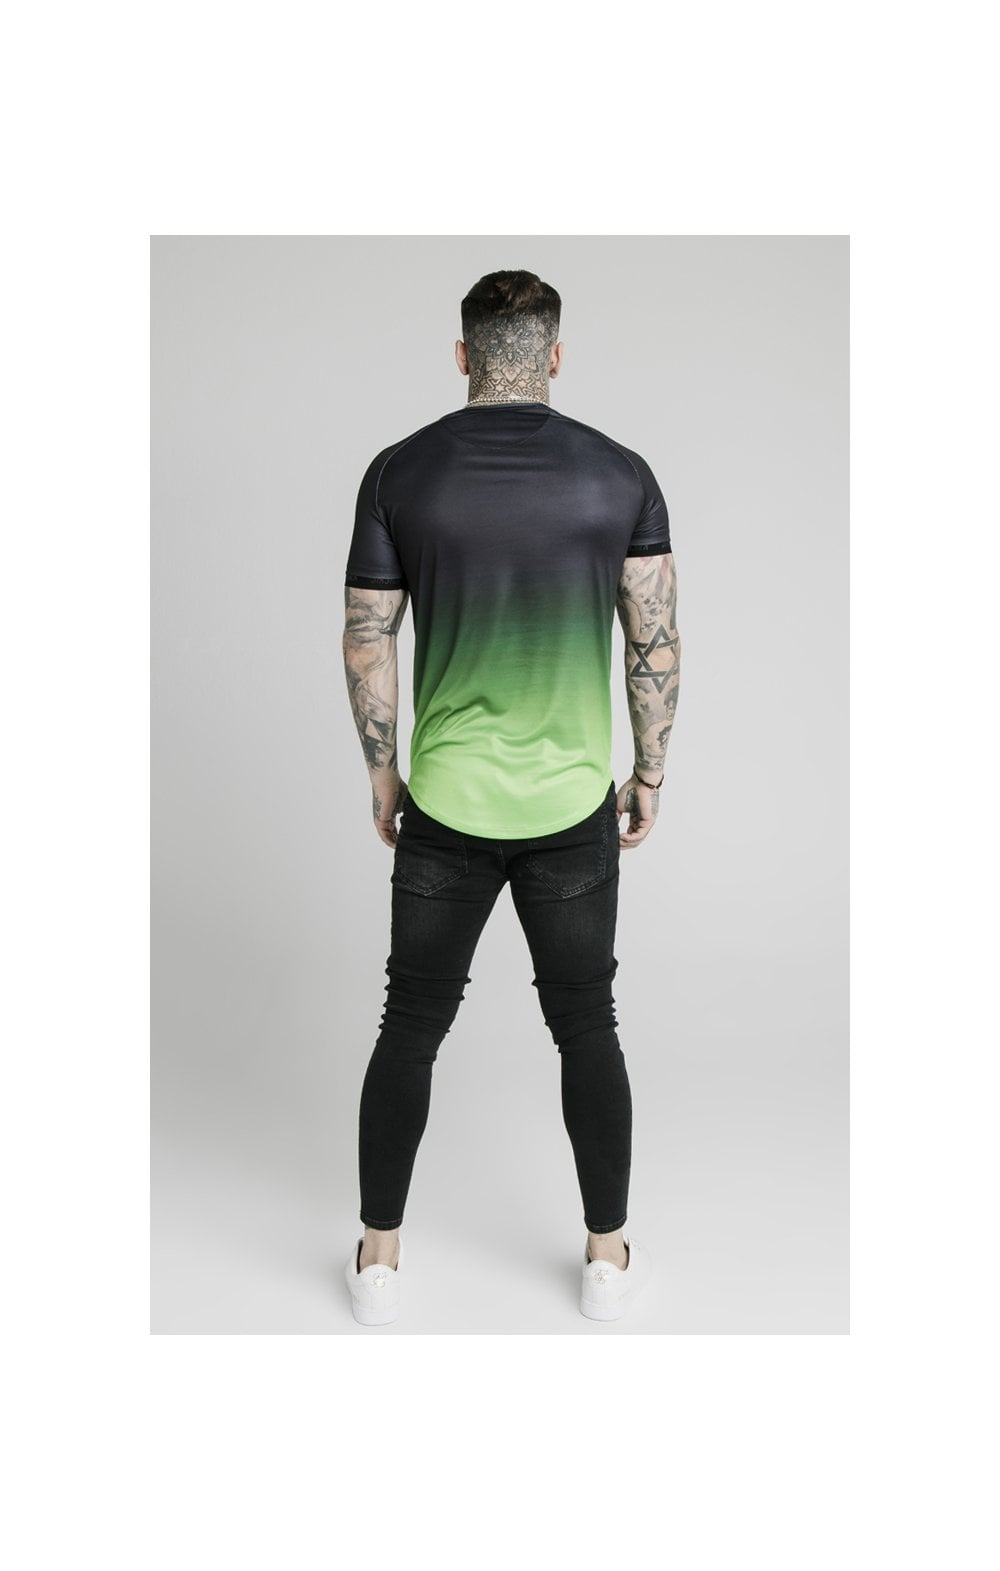 Load image into Gallery viewer, SikSilk S/S Fade Tech Tee - Black & Fluro (5)